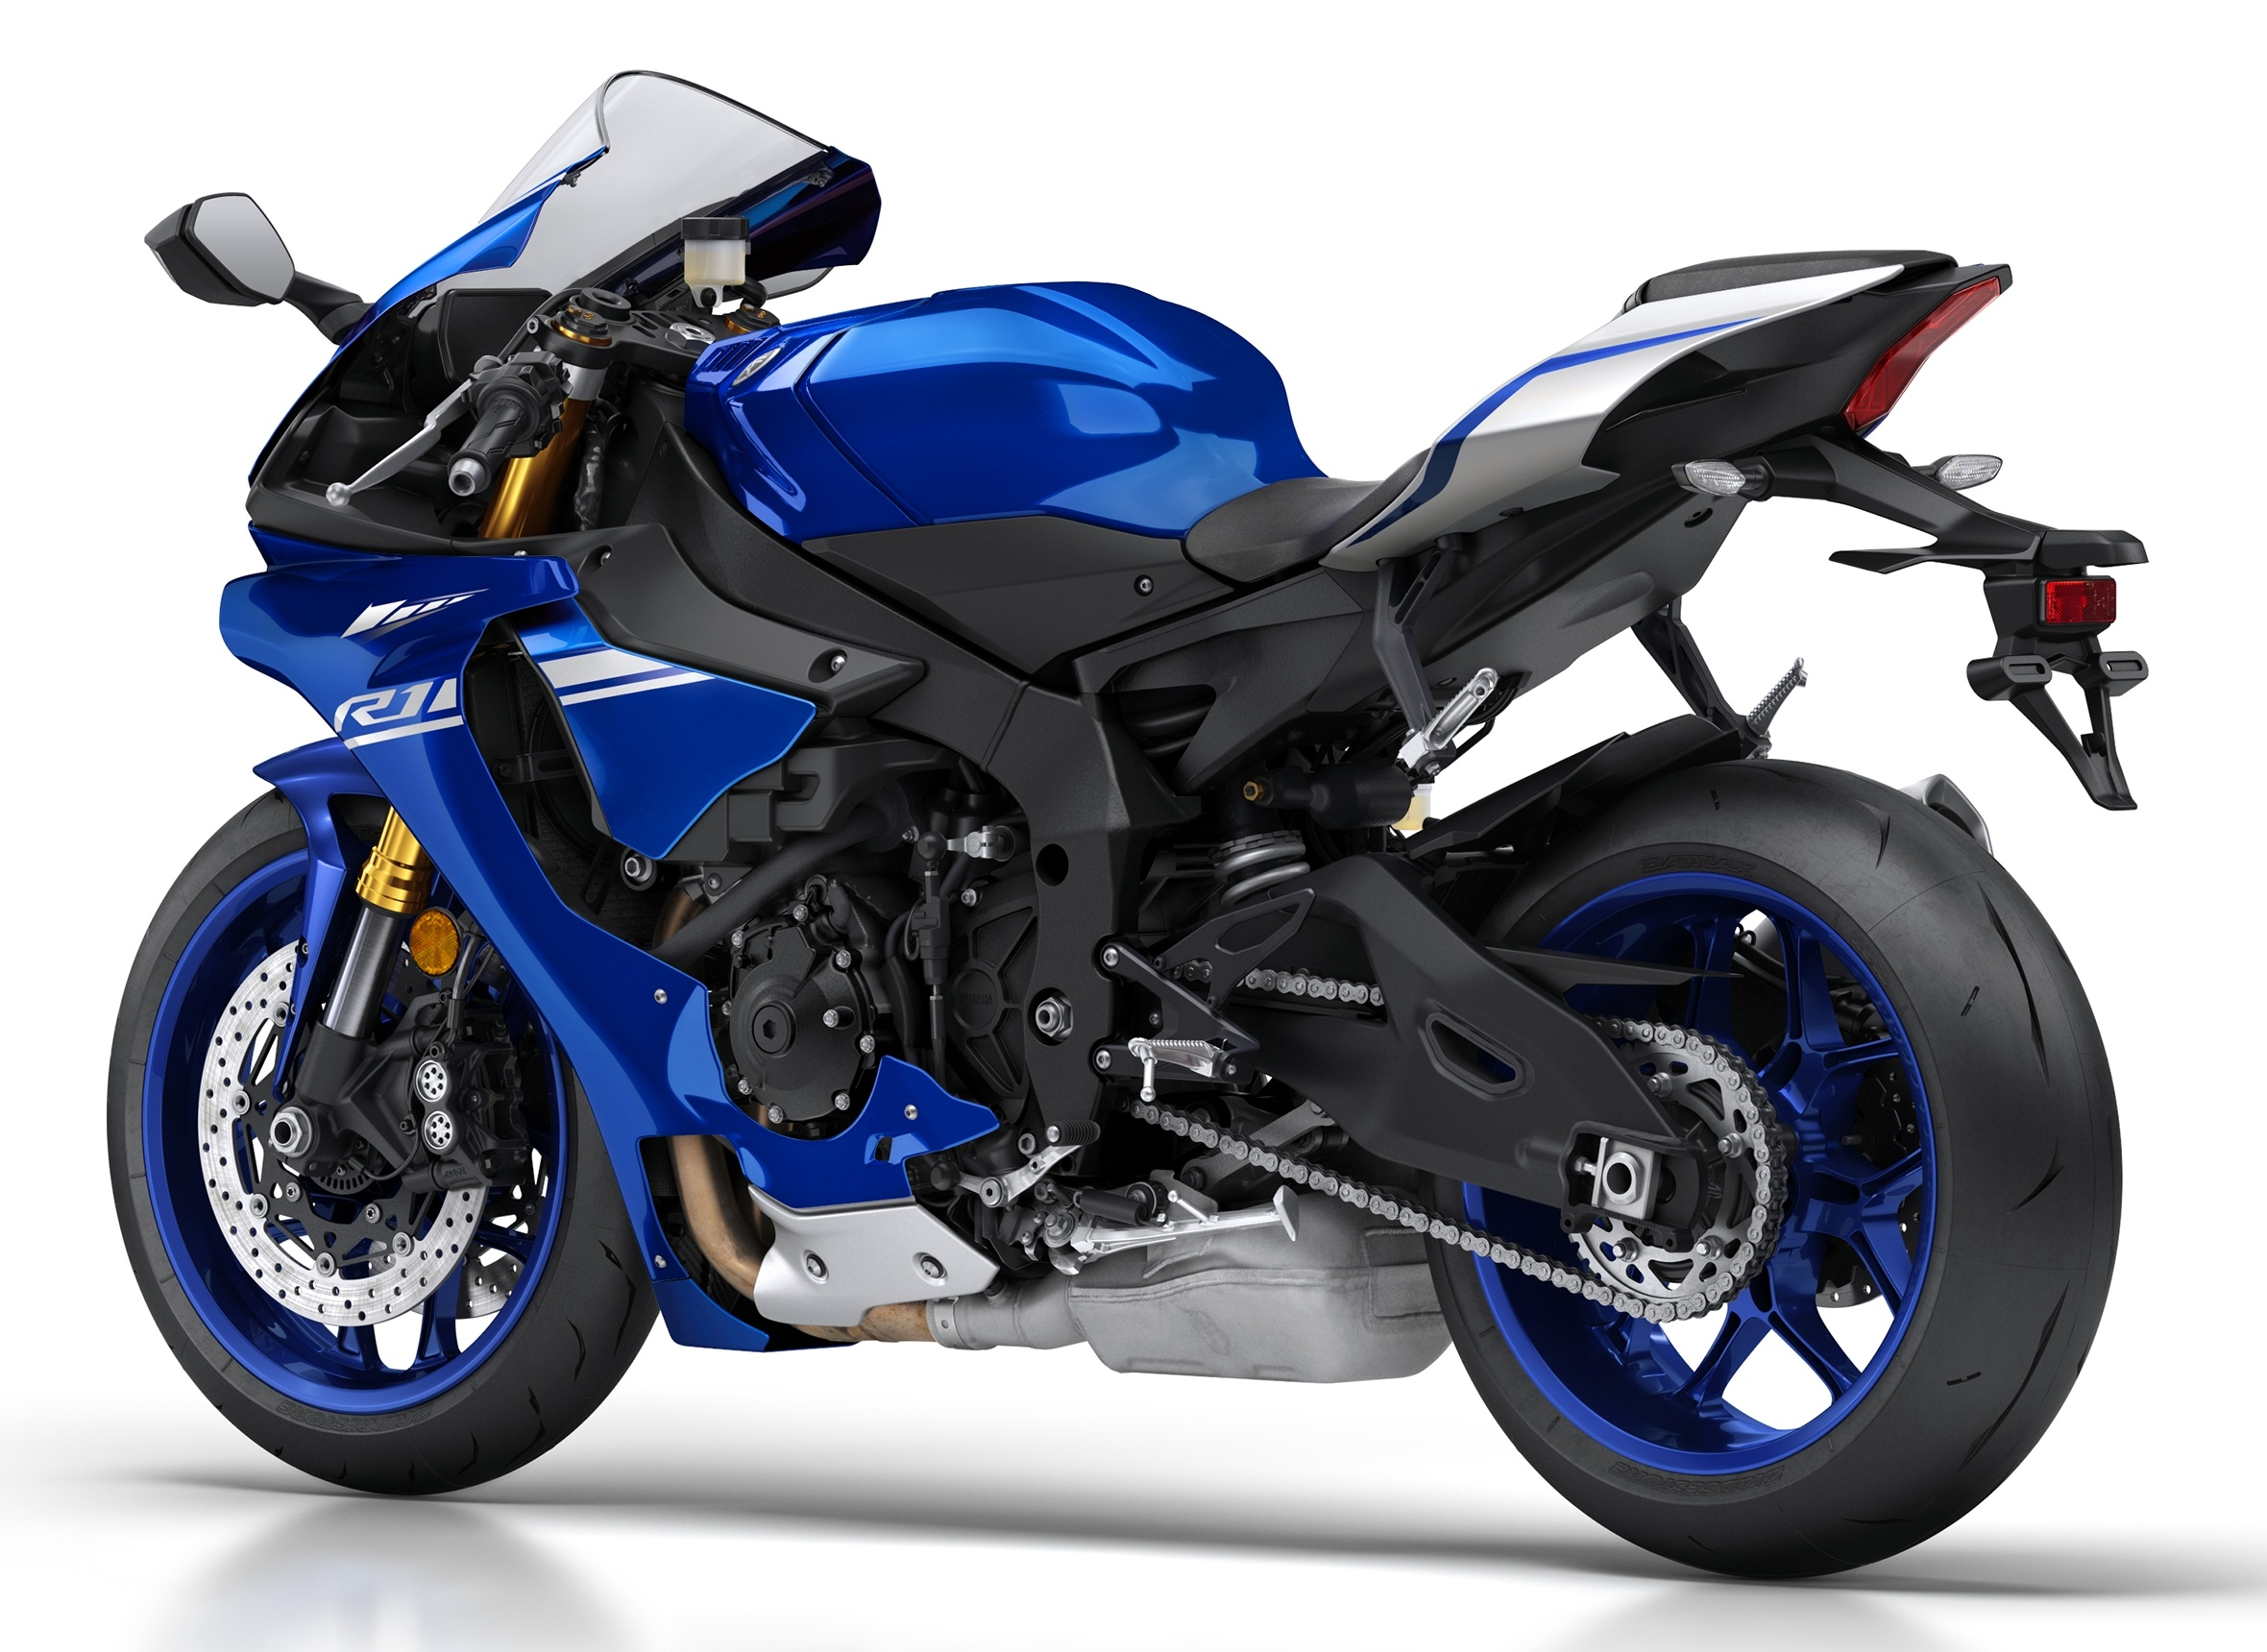 2017 Yamaha Motorcycles Get New Colour Schemes Image 556047